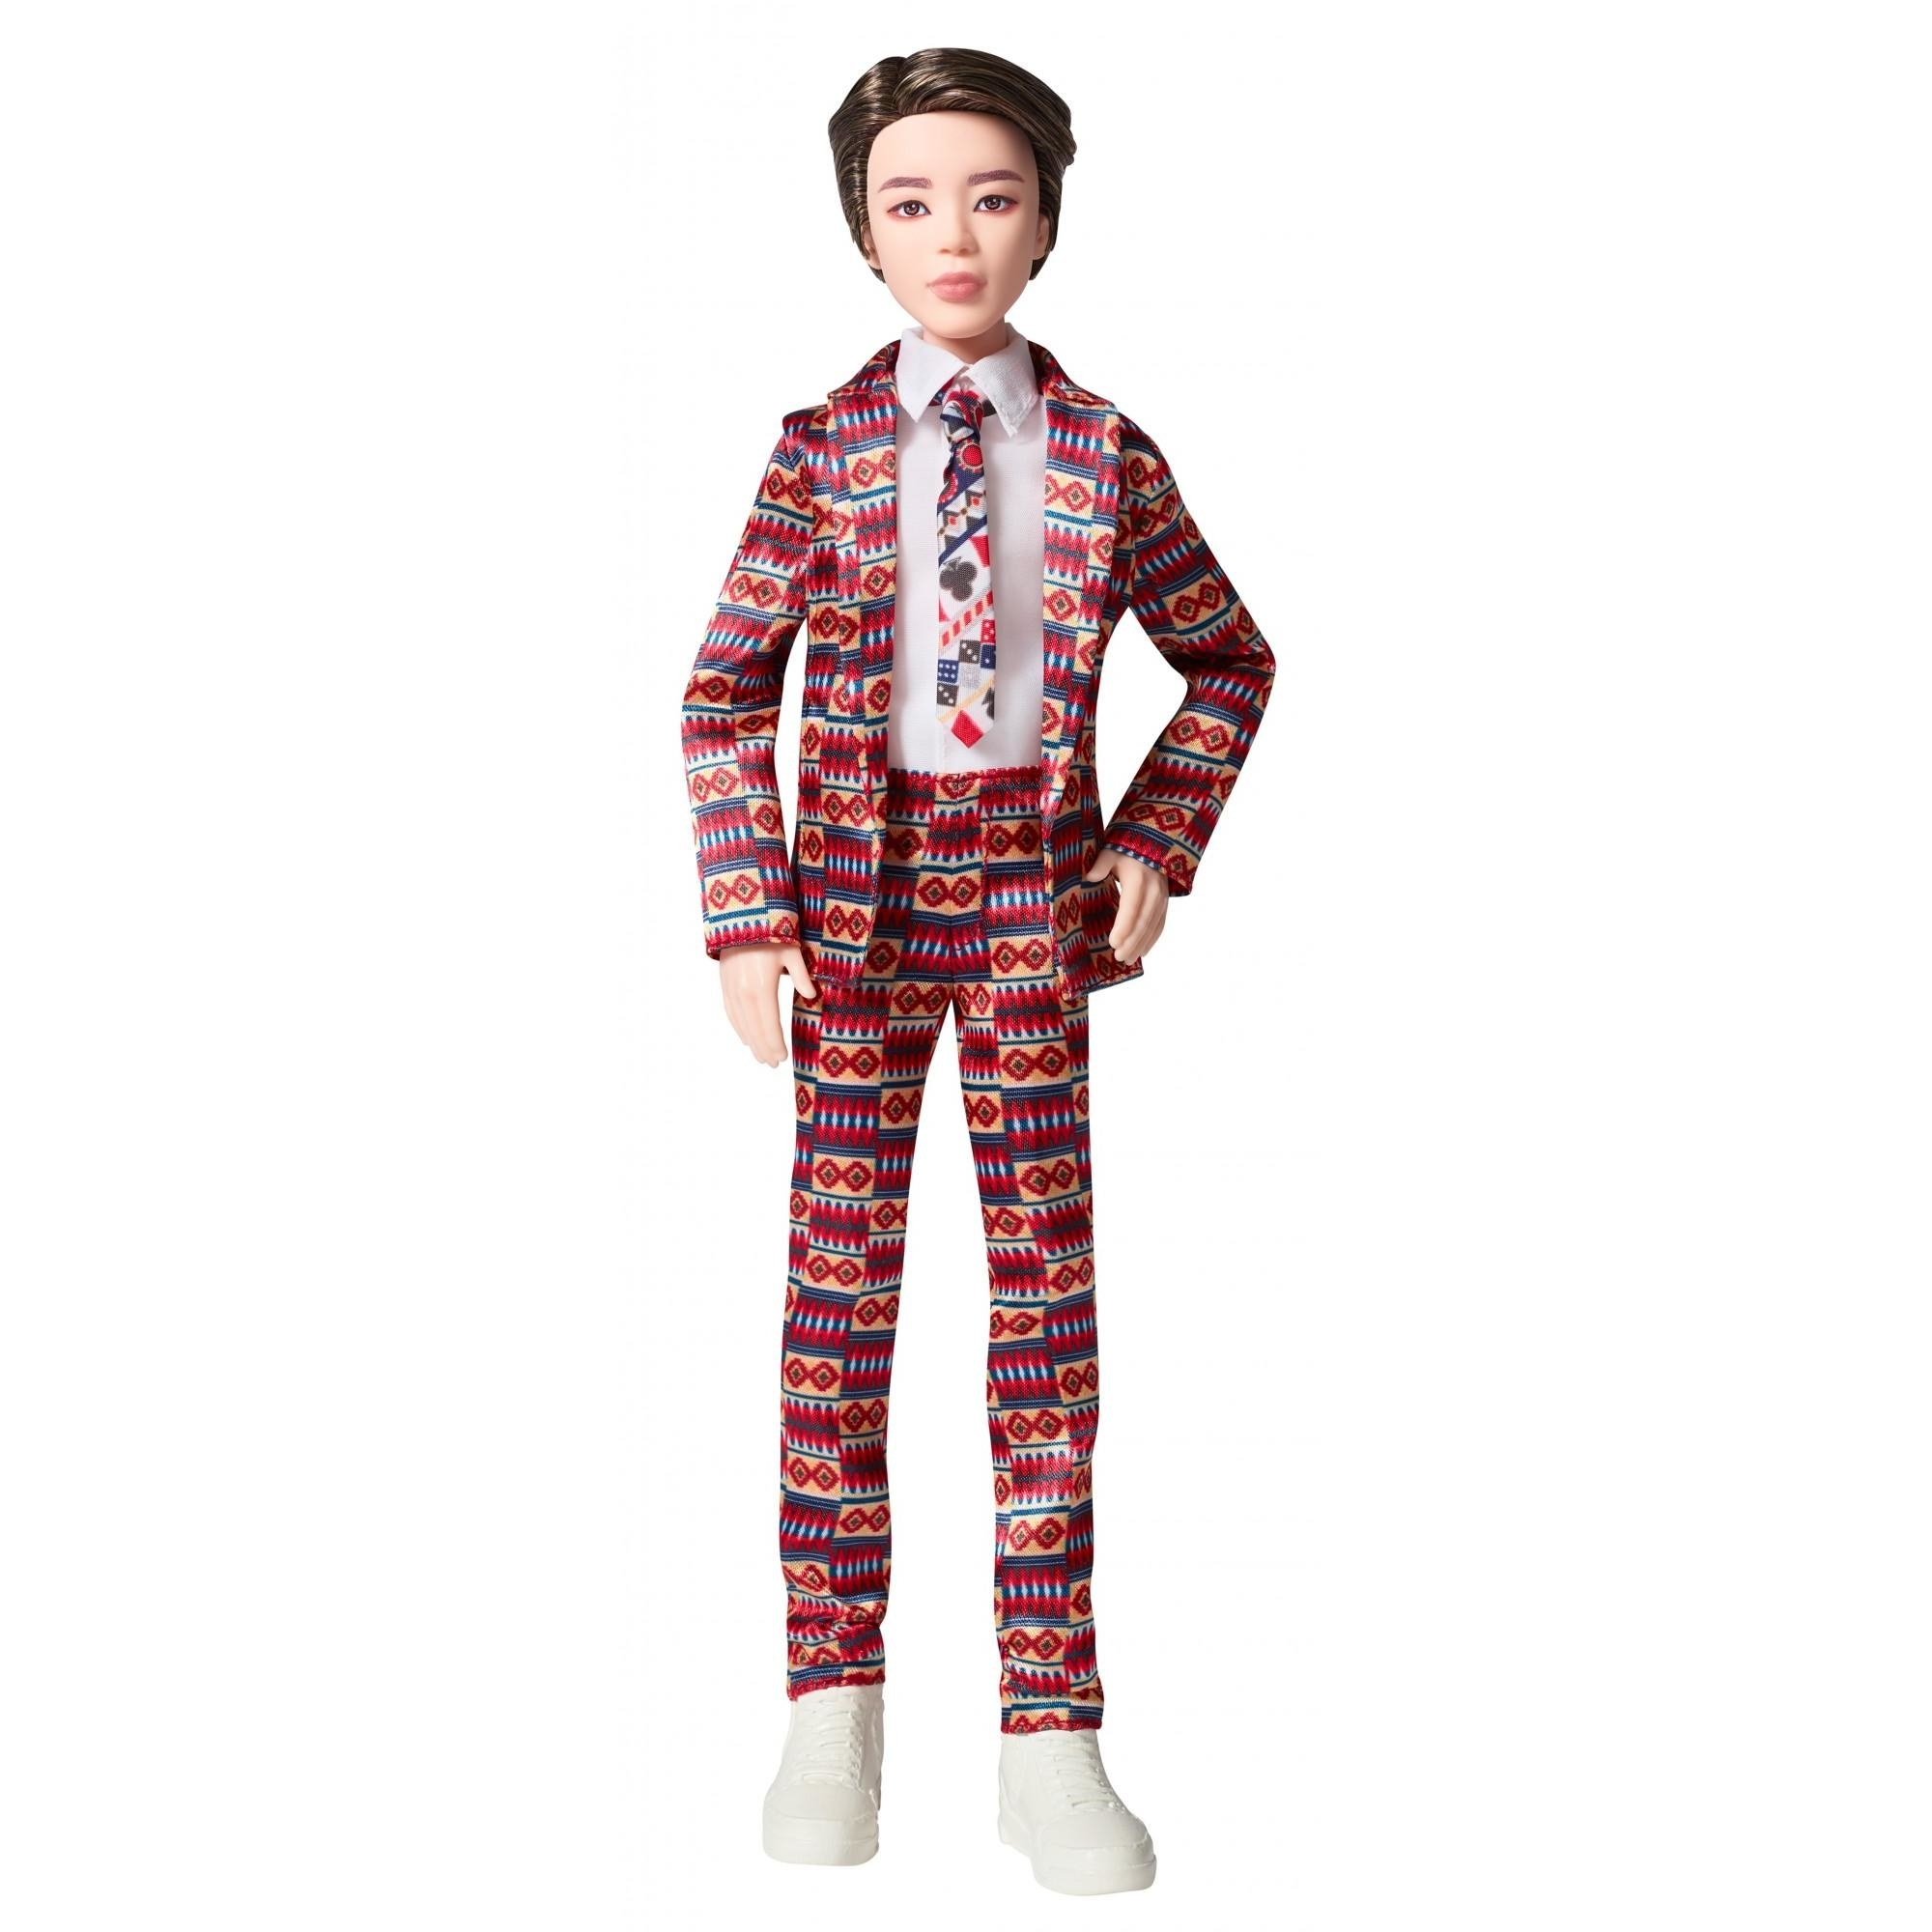 A doll in a multicolored suit